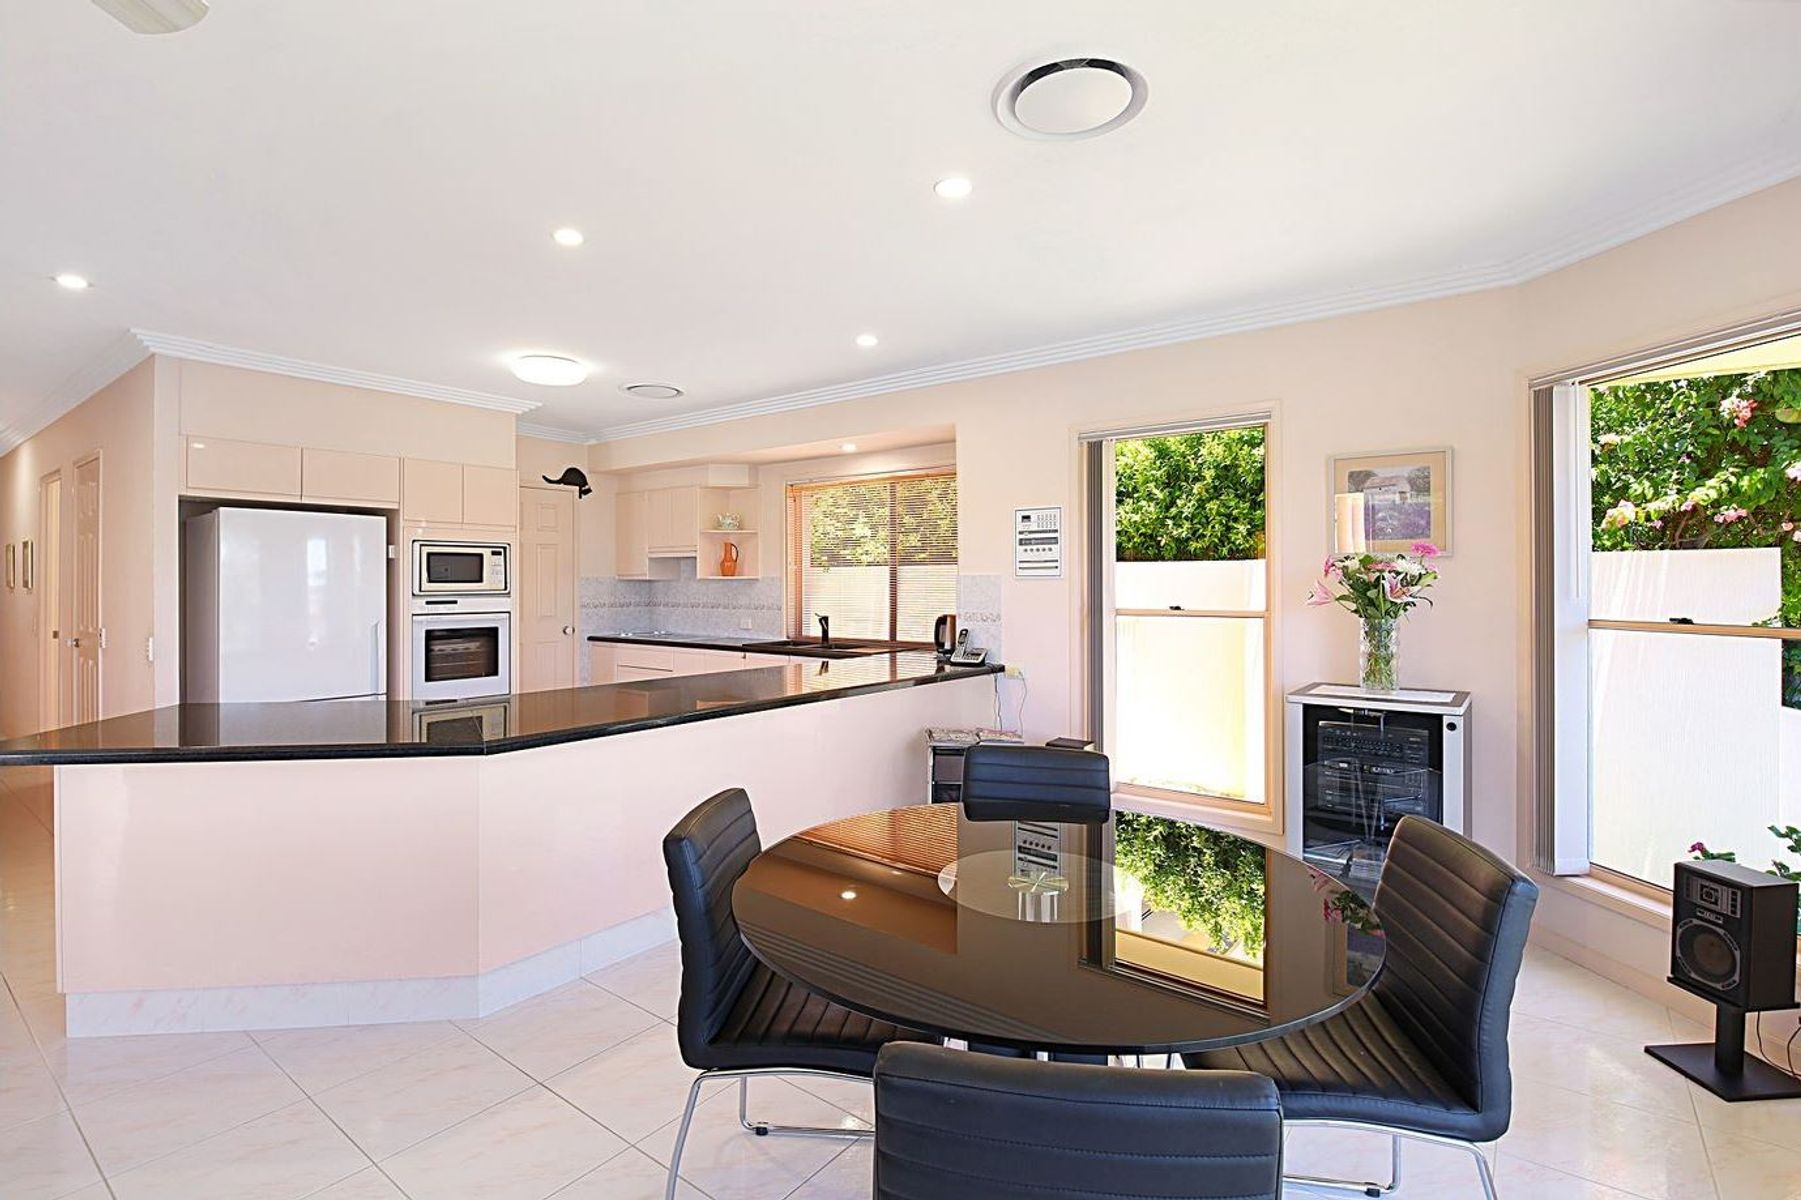 68/40 Cotlew Street, Southport, QLD 4215